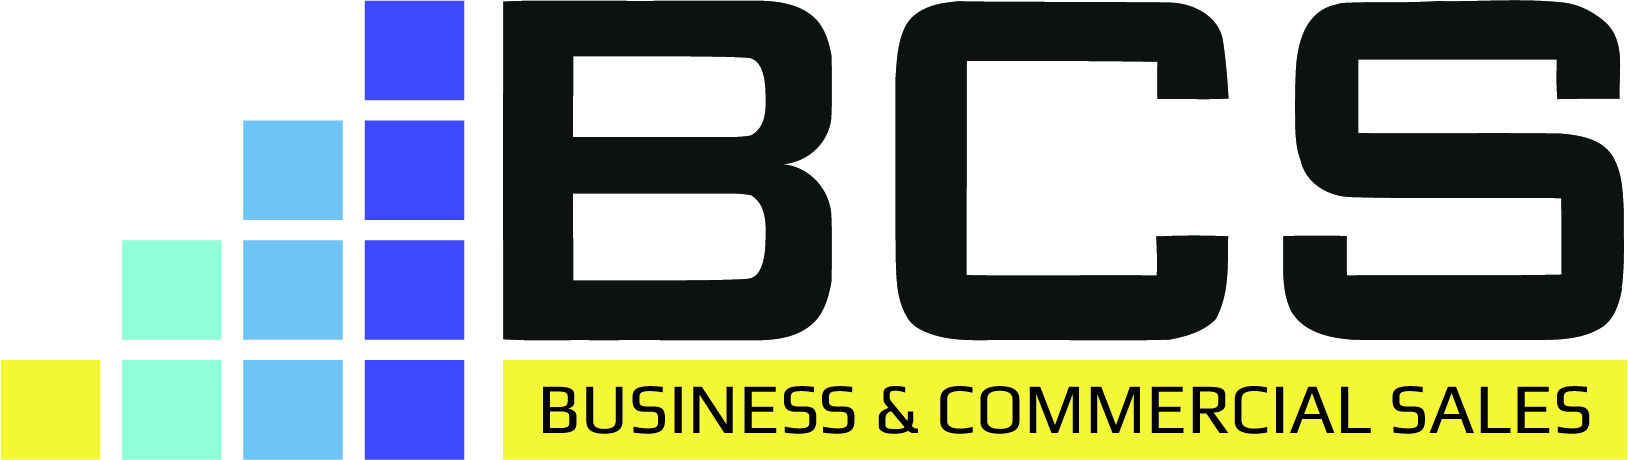 BCS Business & Commercial Sales Logo